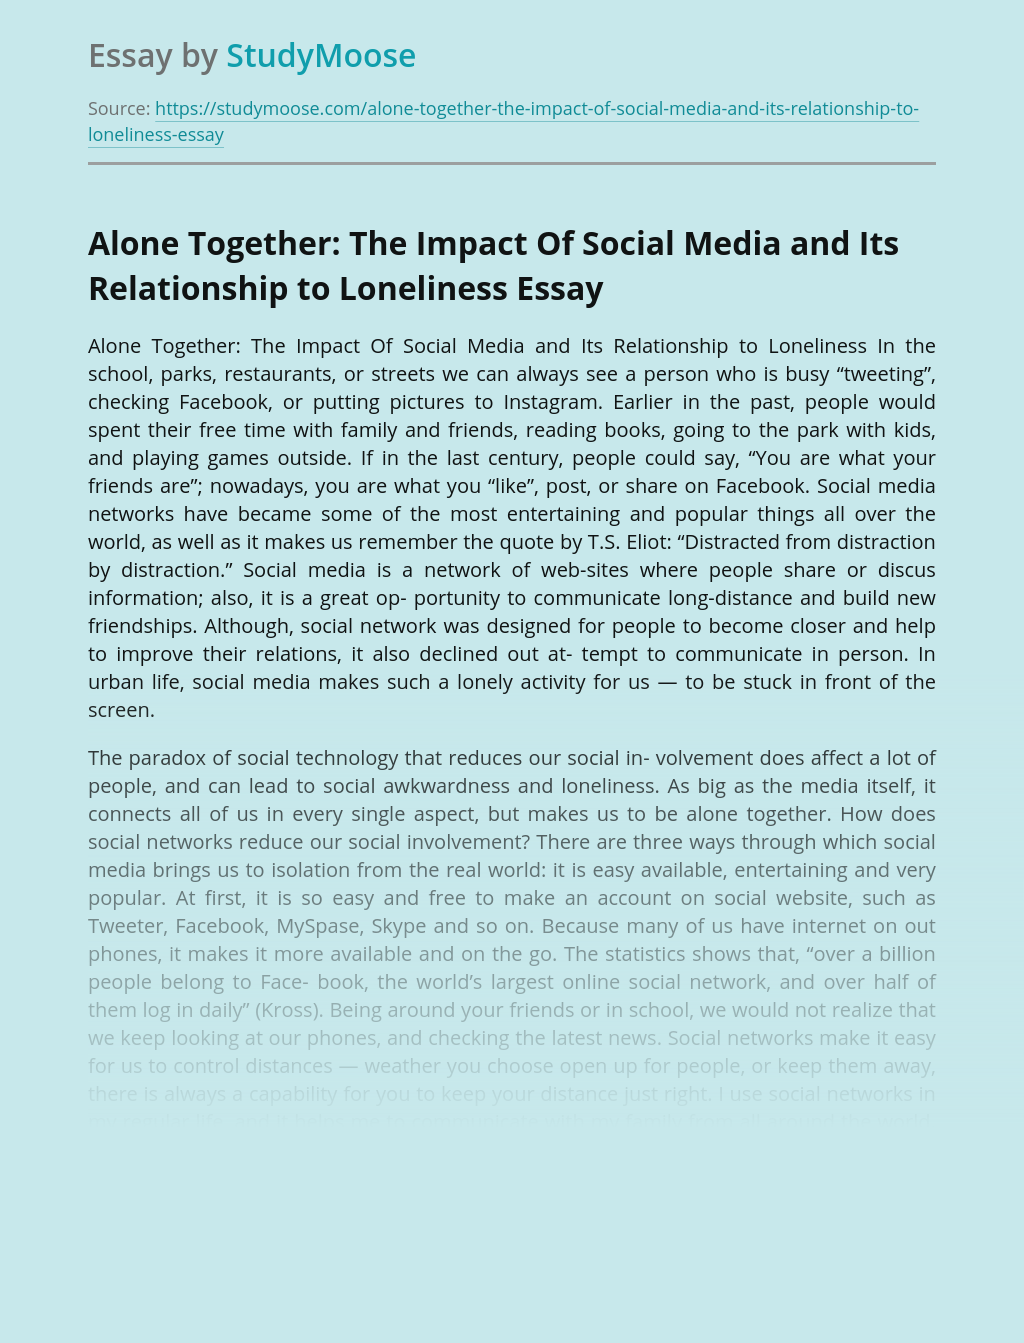 Alone Together: The Impact Of Social Media and Its Relationship to Loneliness